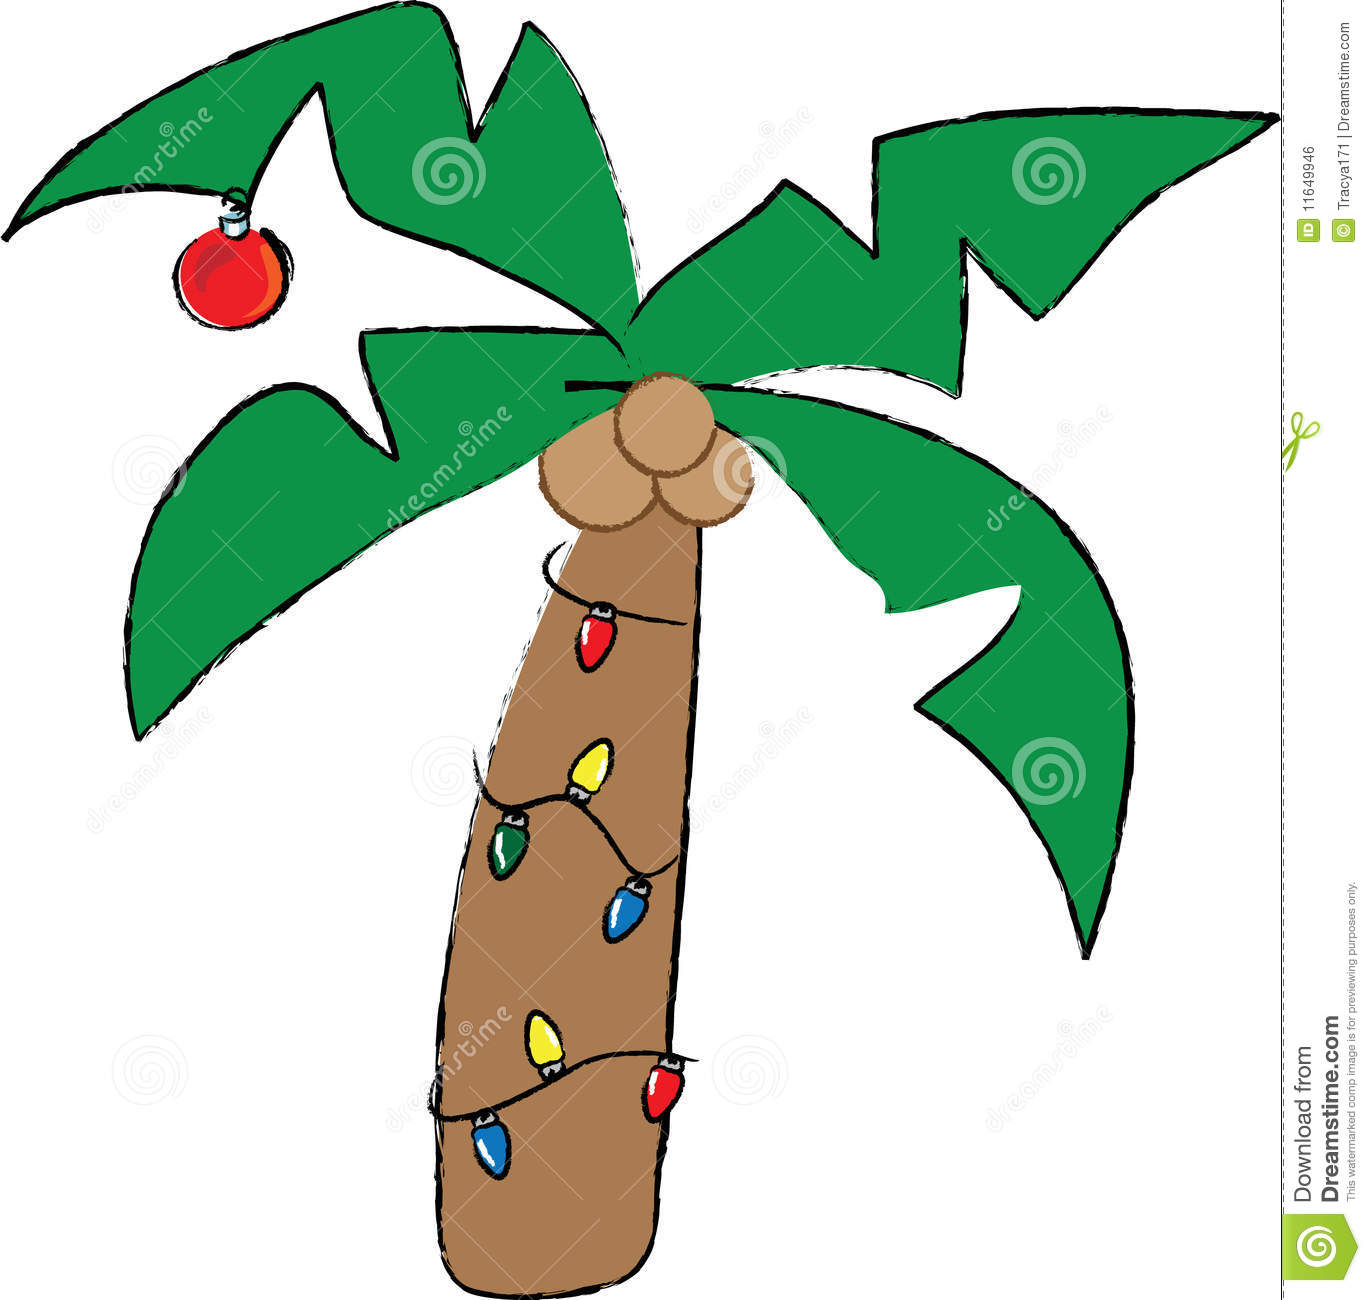 Christmas palm tree clipart 4 » Clipart Station.